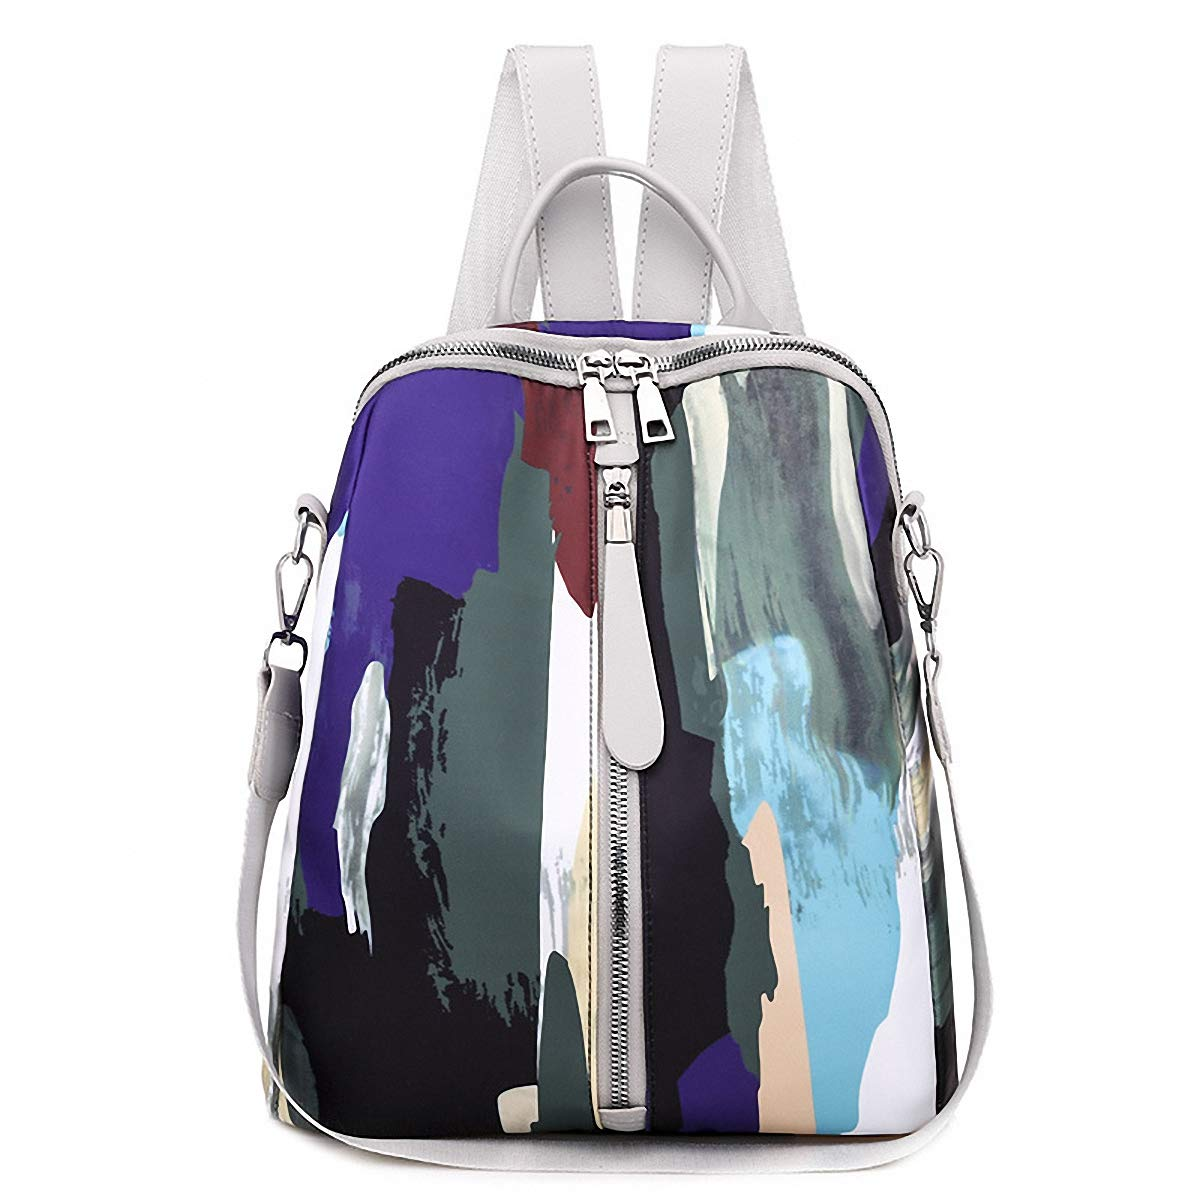 (Buy 1 Get 2 Only19.99)GuaziV Backpack Purse for Women Nylon Anti-theft Waterproof Fashion Bag Lightweight School Shoulder Bags